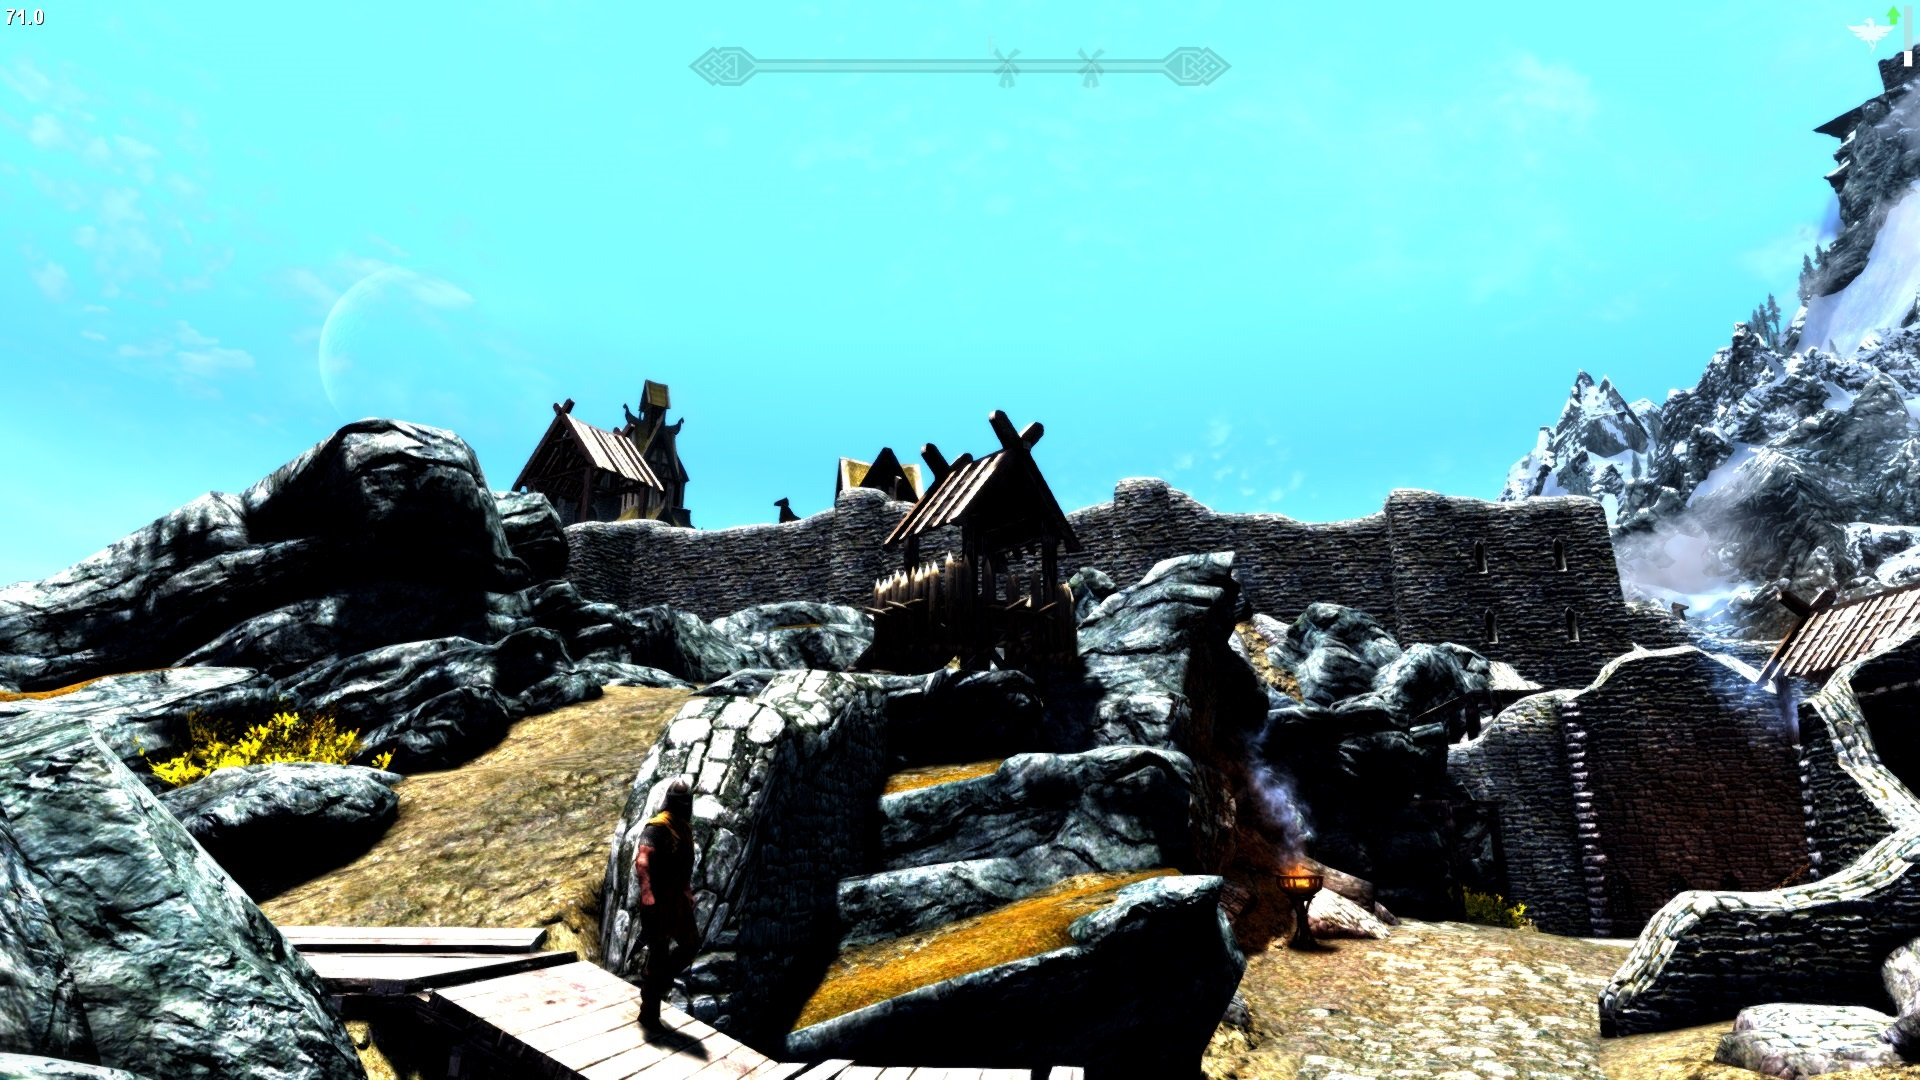 ENB equivalent achieved with mods